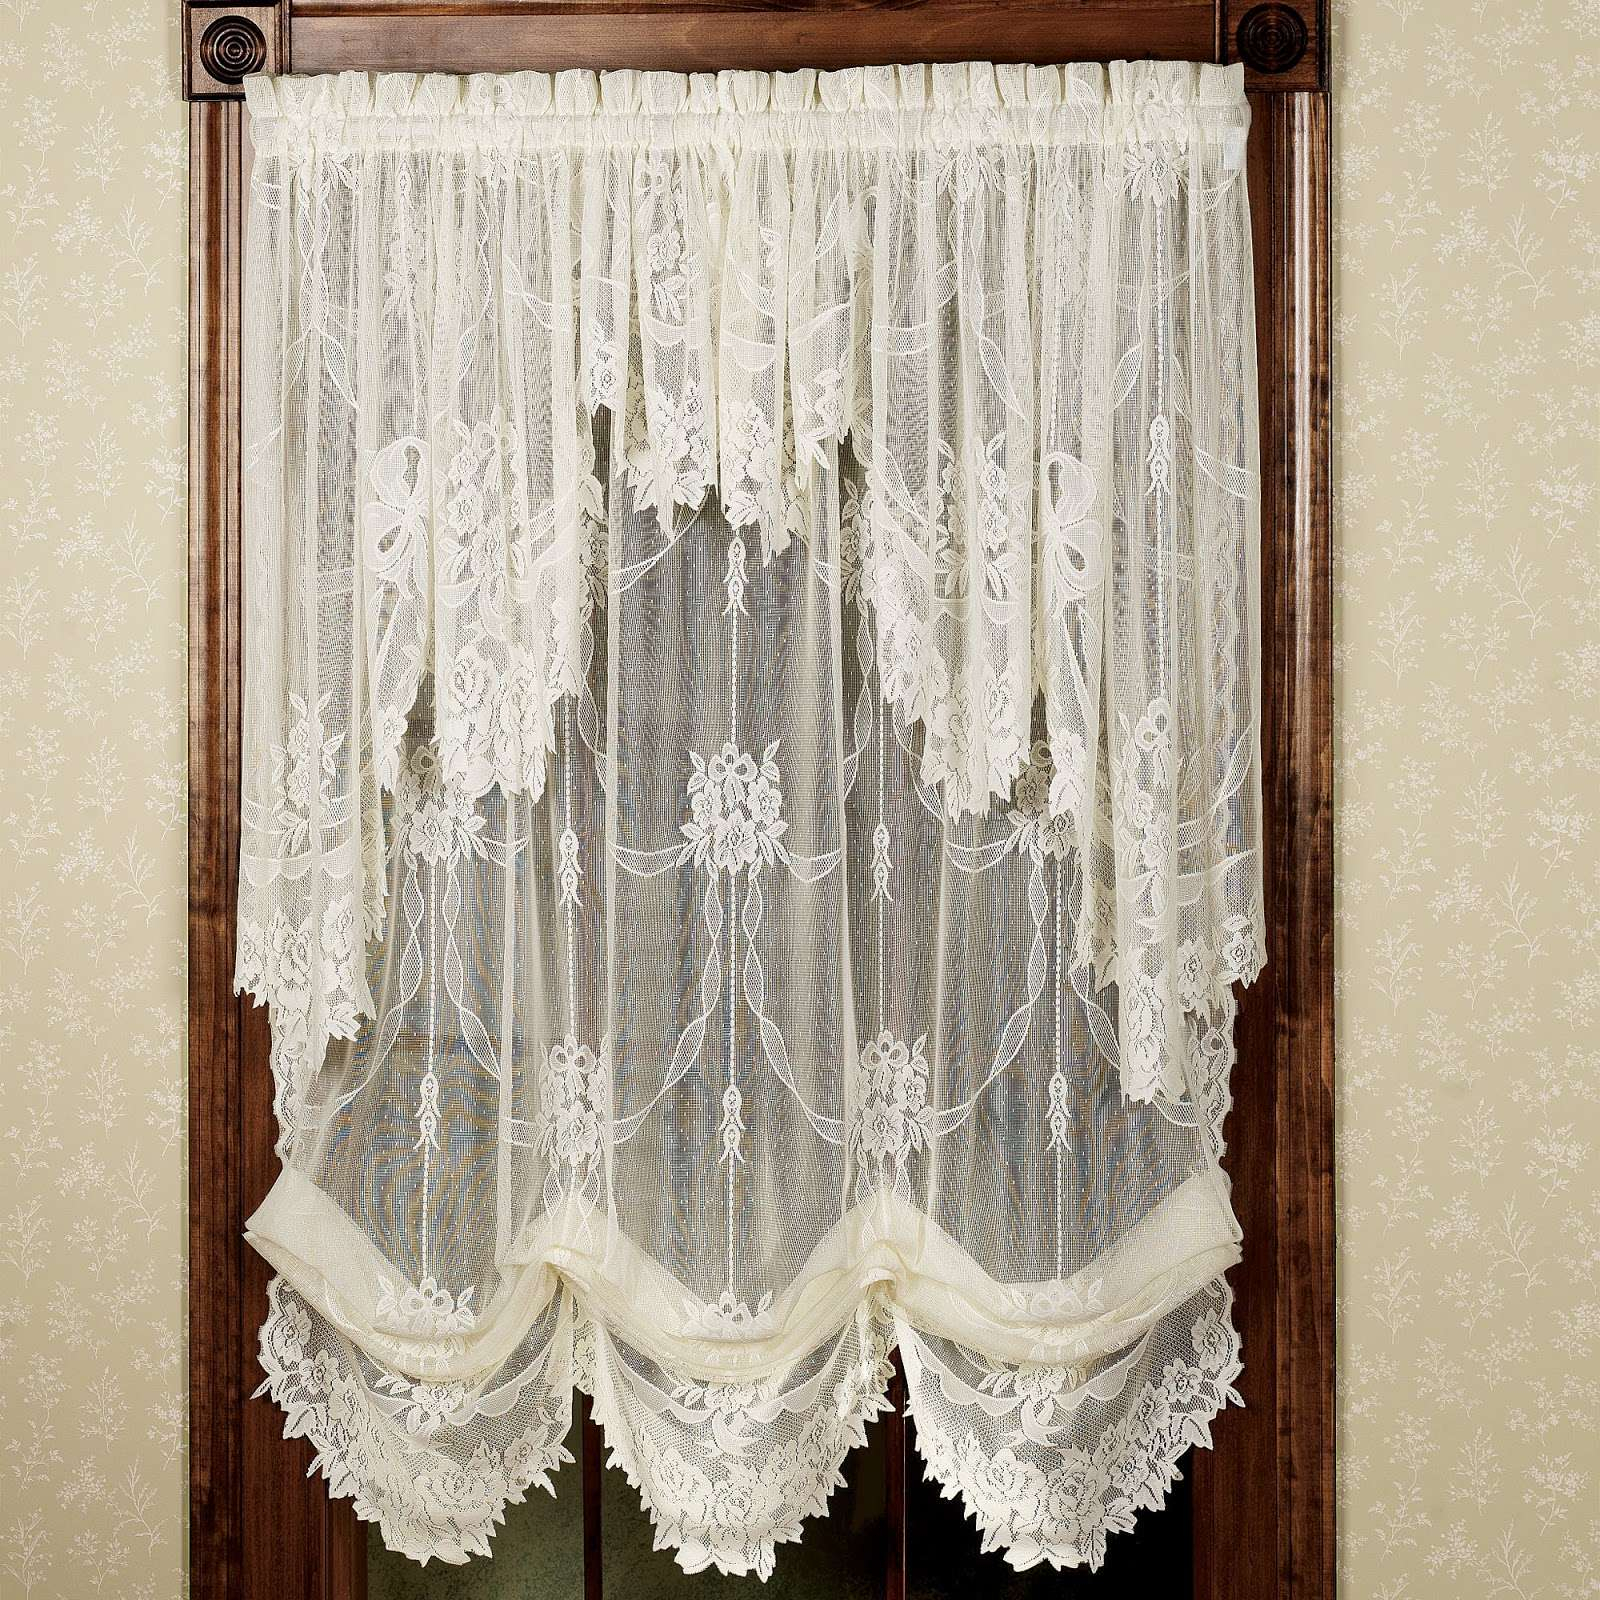 Pretty Country Lace Curtains Swags For Living Room Catalog Intended For Country Style Curtain Parts With White Daisy Lace Accent (View 14 of 20)